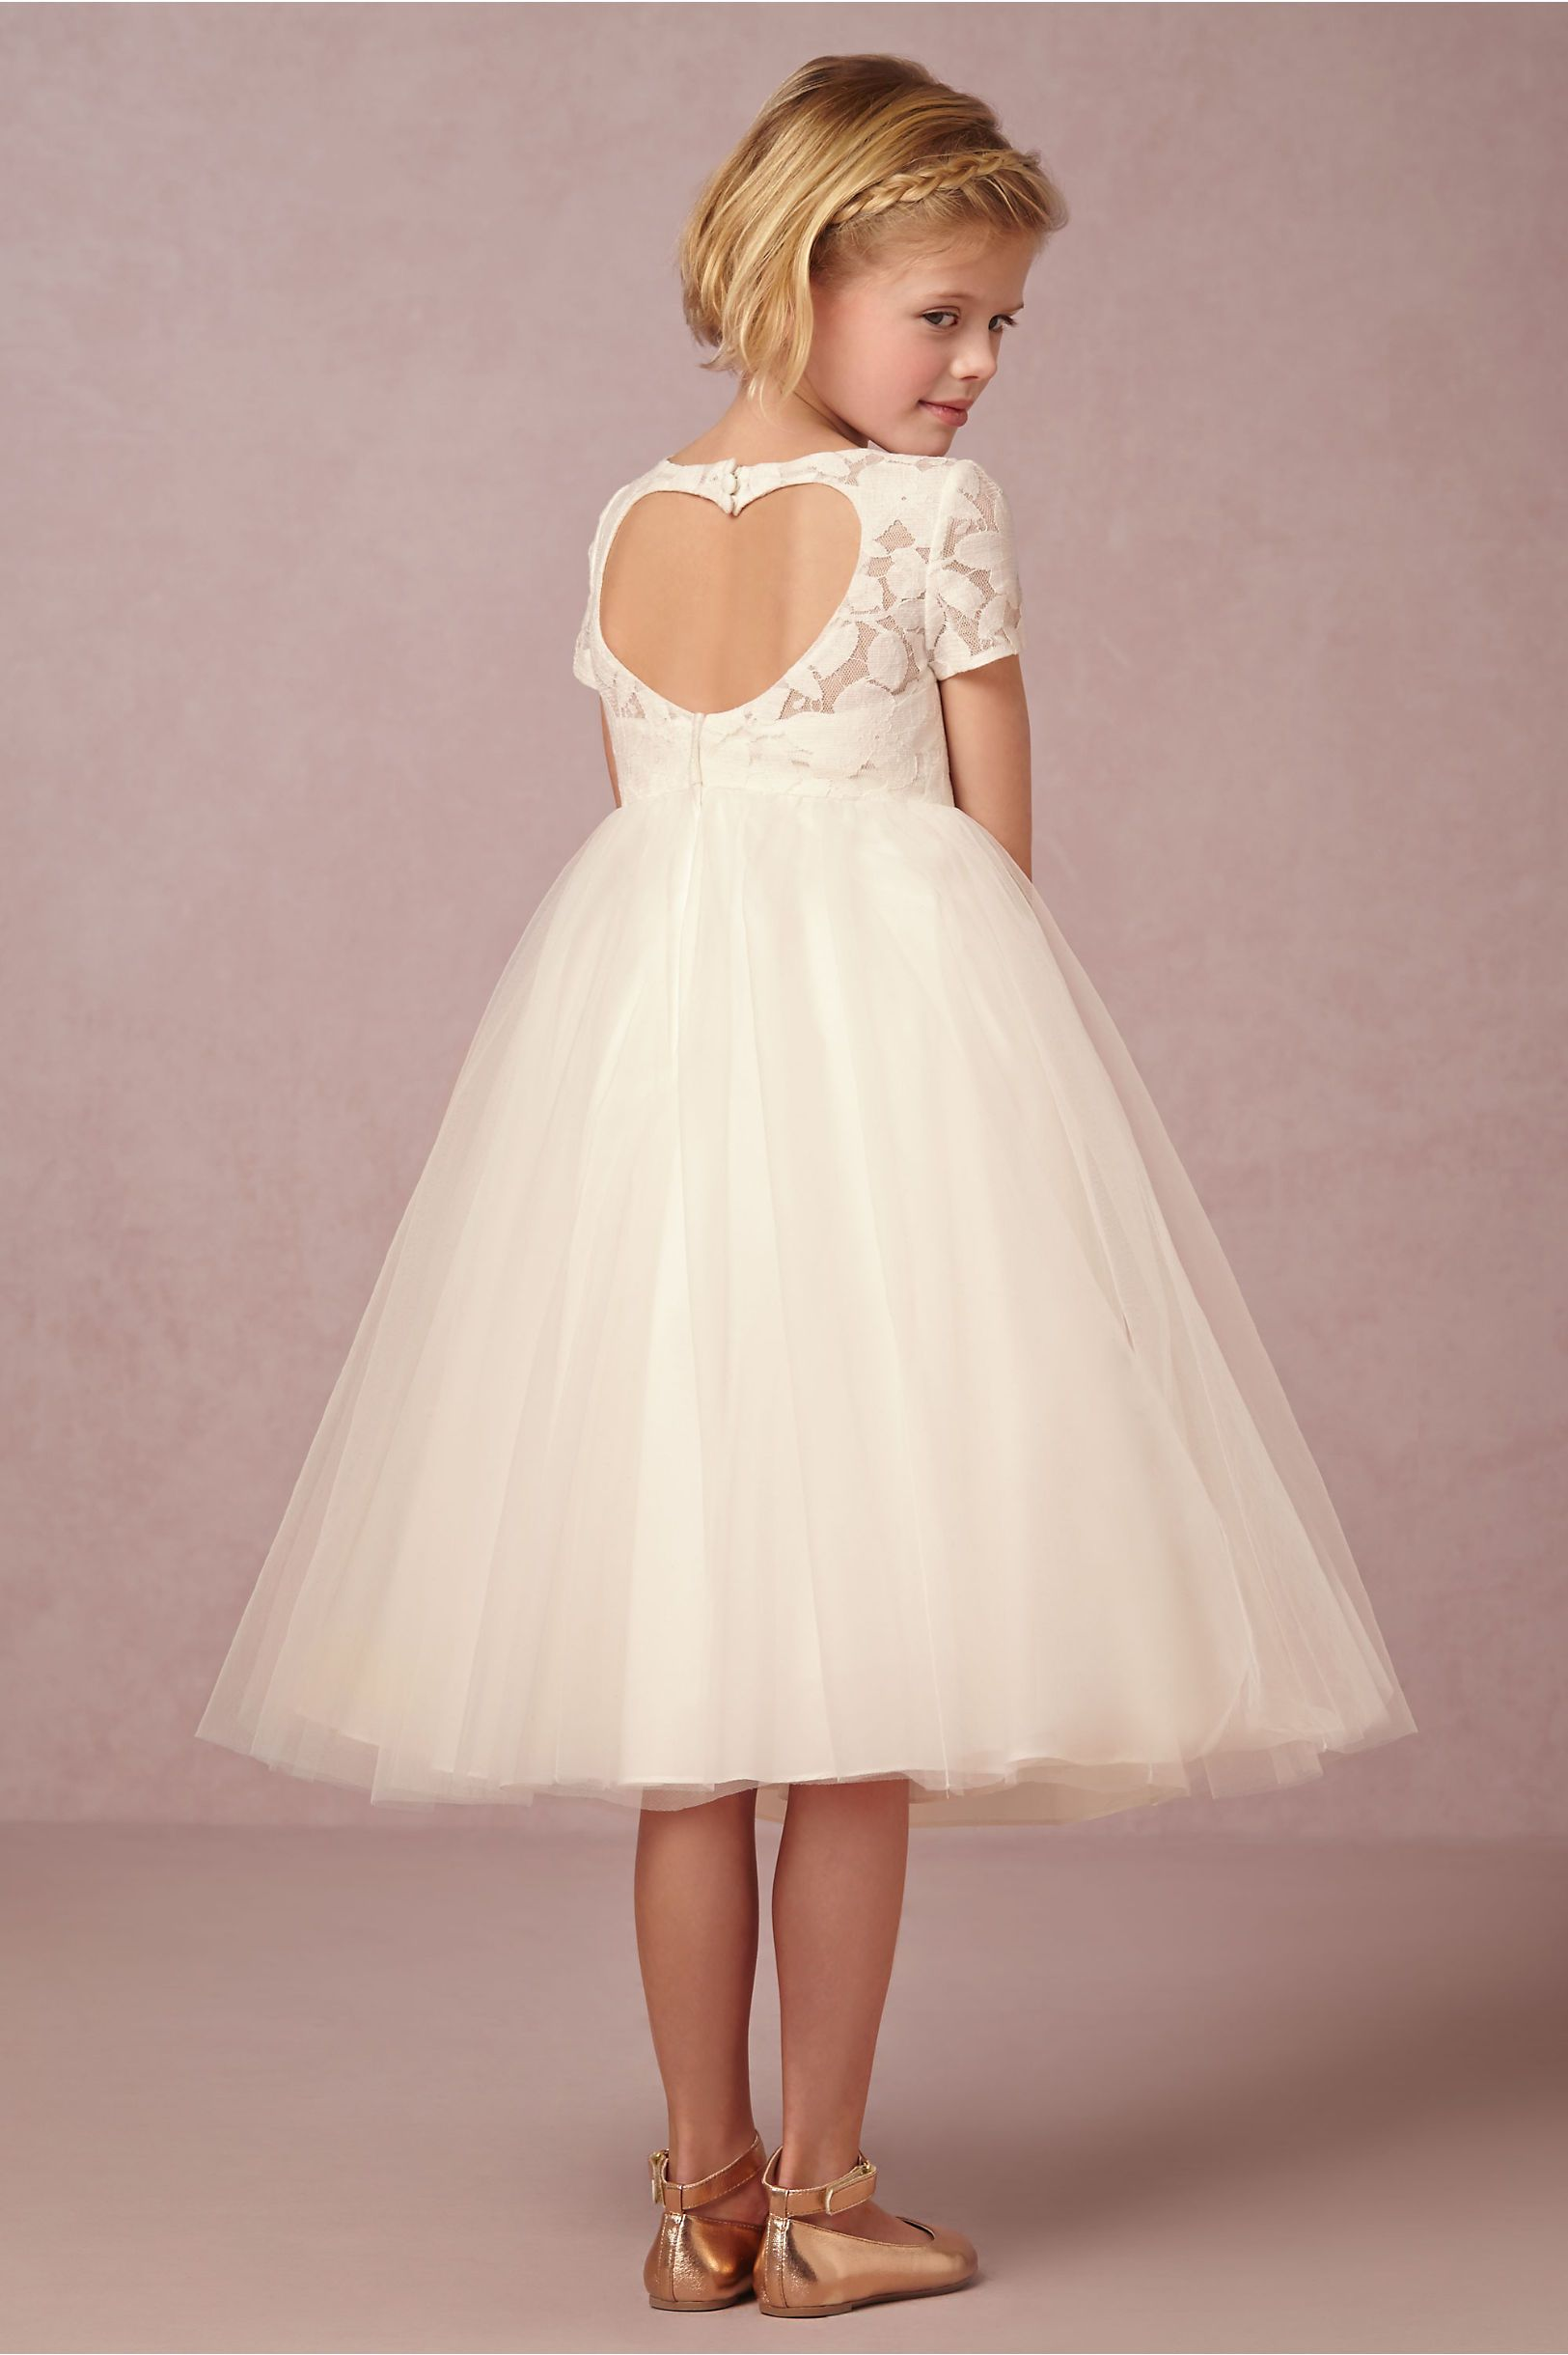 Portia Flower Girl Dress With Heart Cutout Detail From